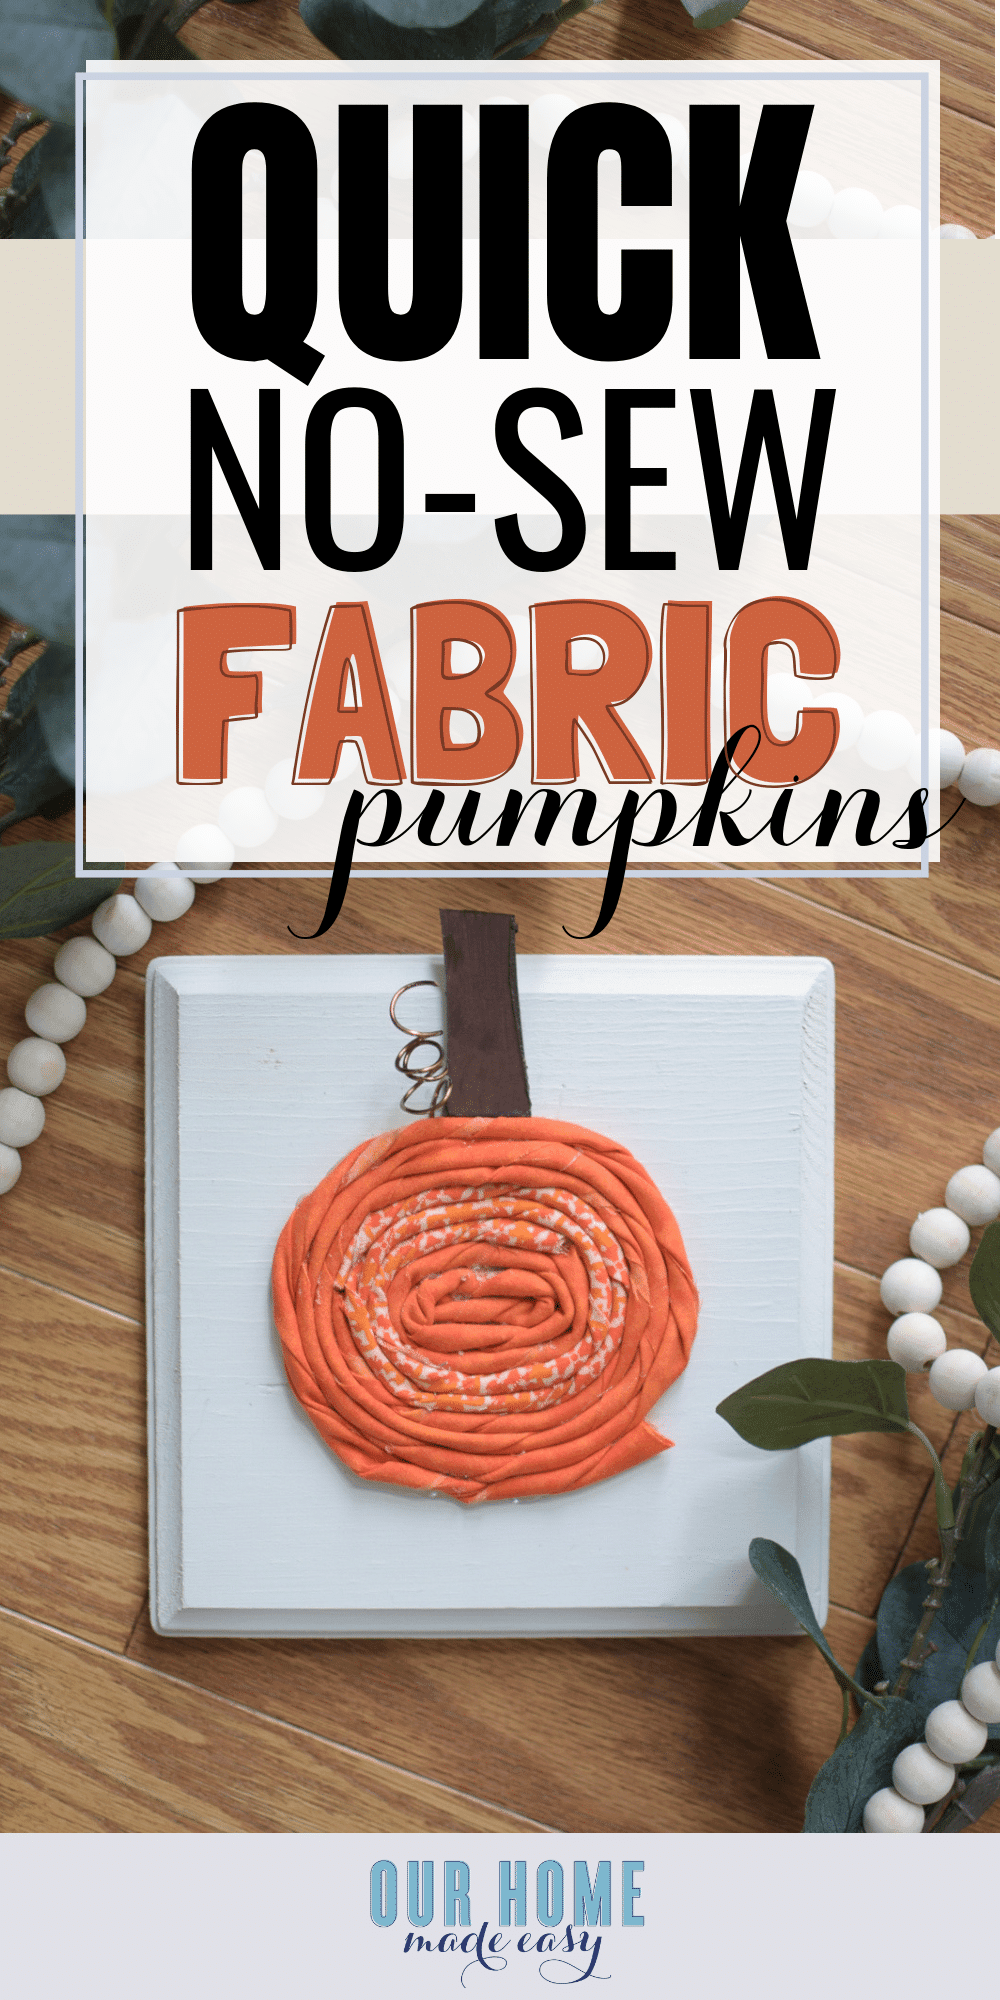 These fabric pumpkins are a fun way to use fabric that requires zero sewing! Simply twist and glue for a cute decor that is super easy to make! #fabric #pumpkins #fallcrafts #crafts #halloween